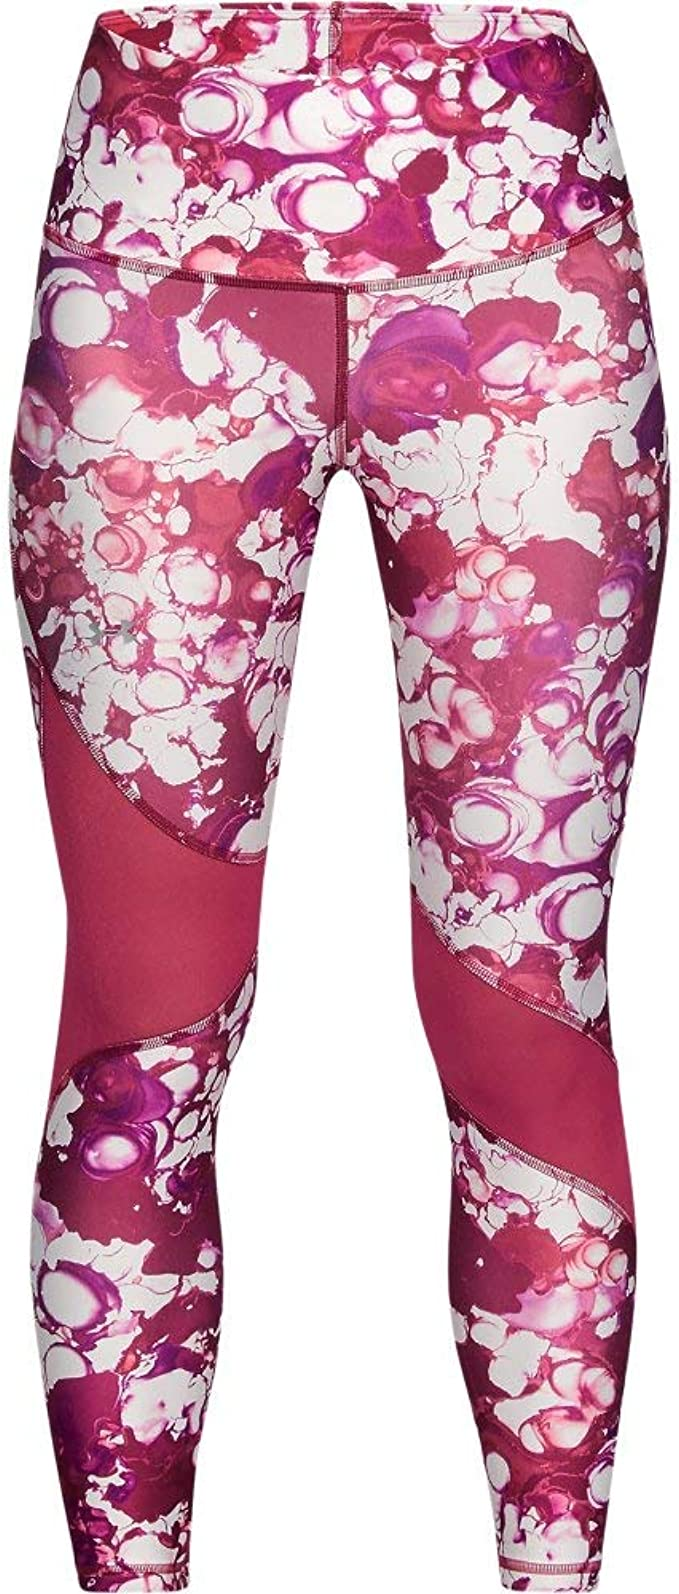 Calzoni alla Pescatora Bambina Armour HeatGear Printed Ankle Crop Under Armour